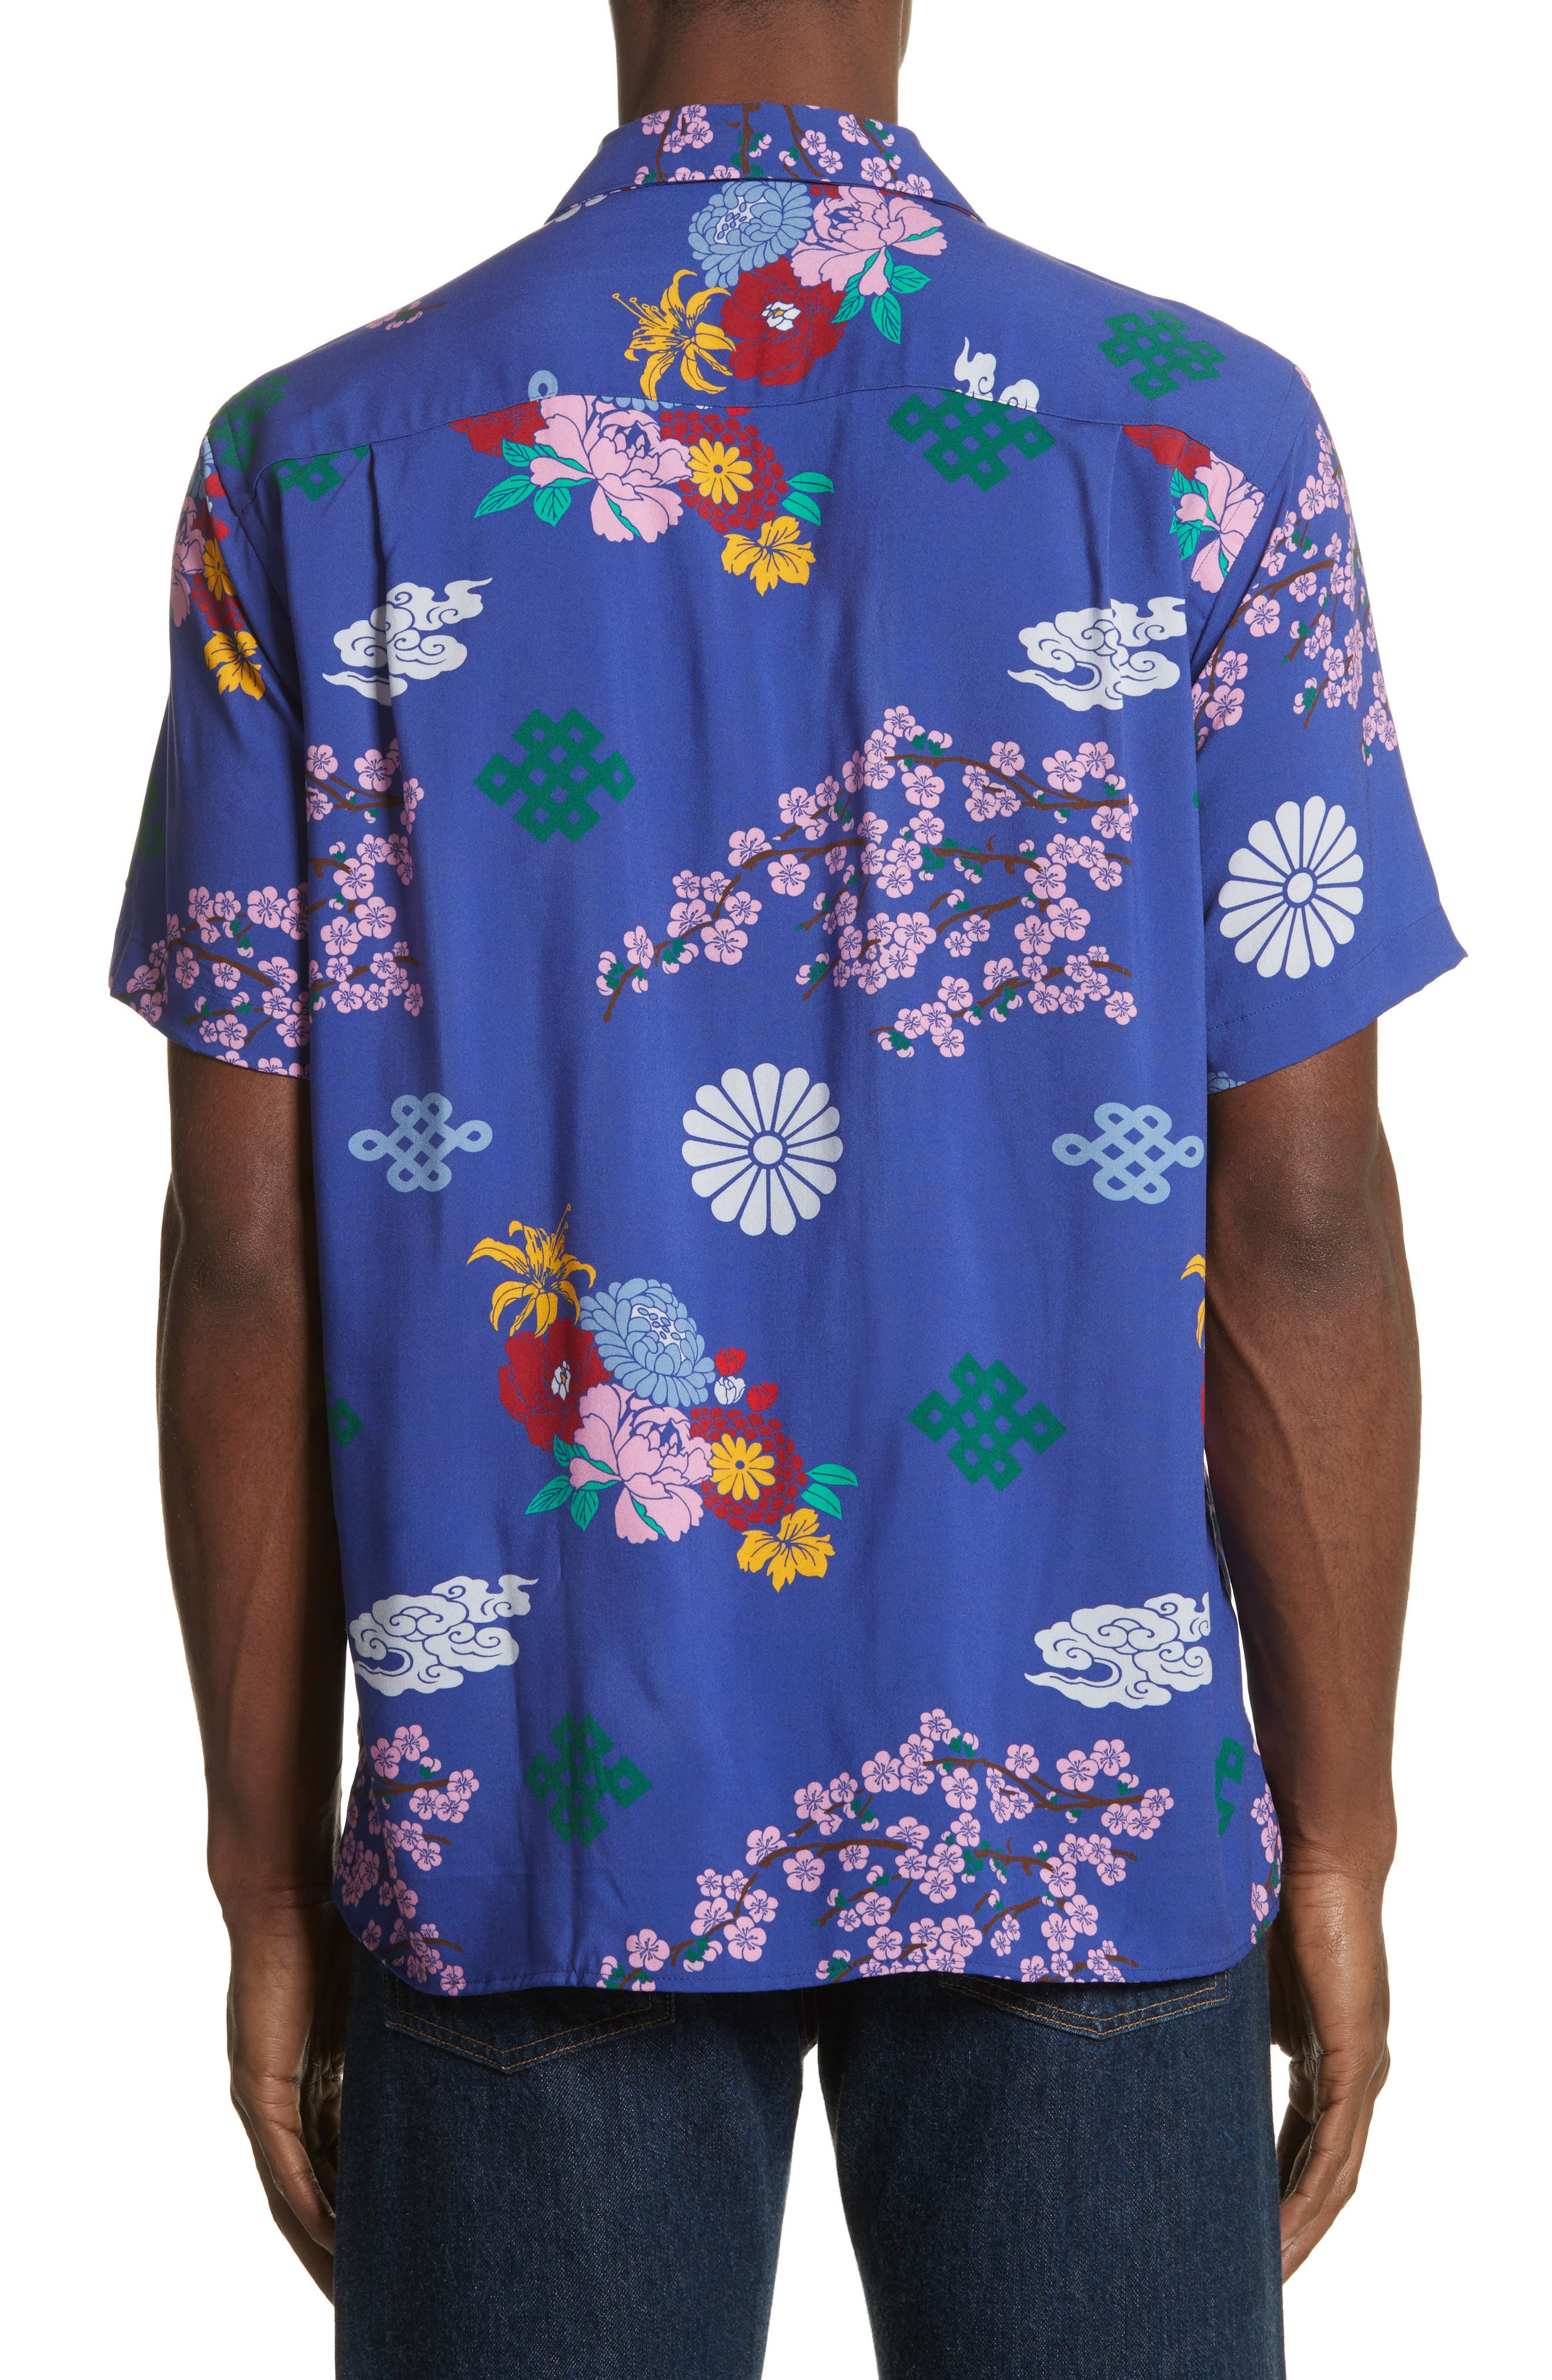 x The North Face Men's Floral Print Camp Shirt,                             Alternate thumbnail 3, color,                             Blue Ground